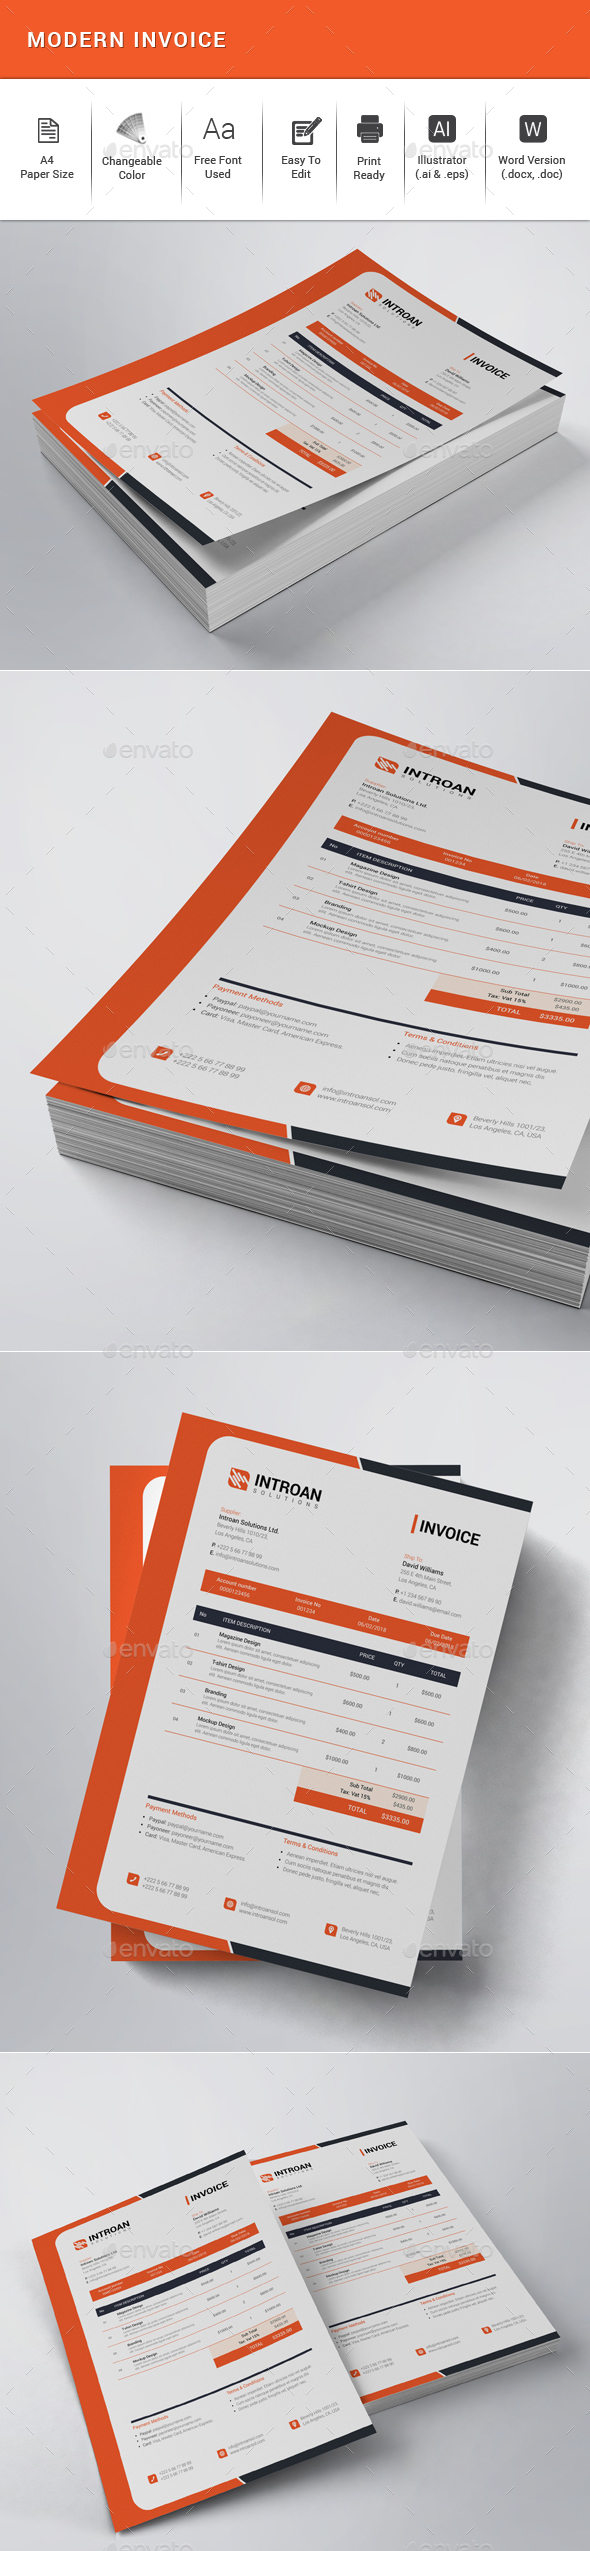 Modern Invoice - Proposals & Invoices Stationery